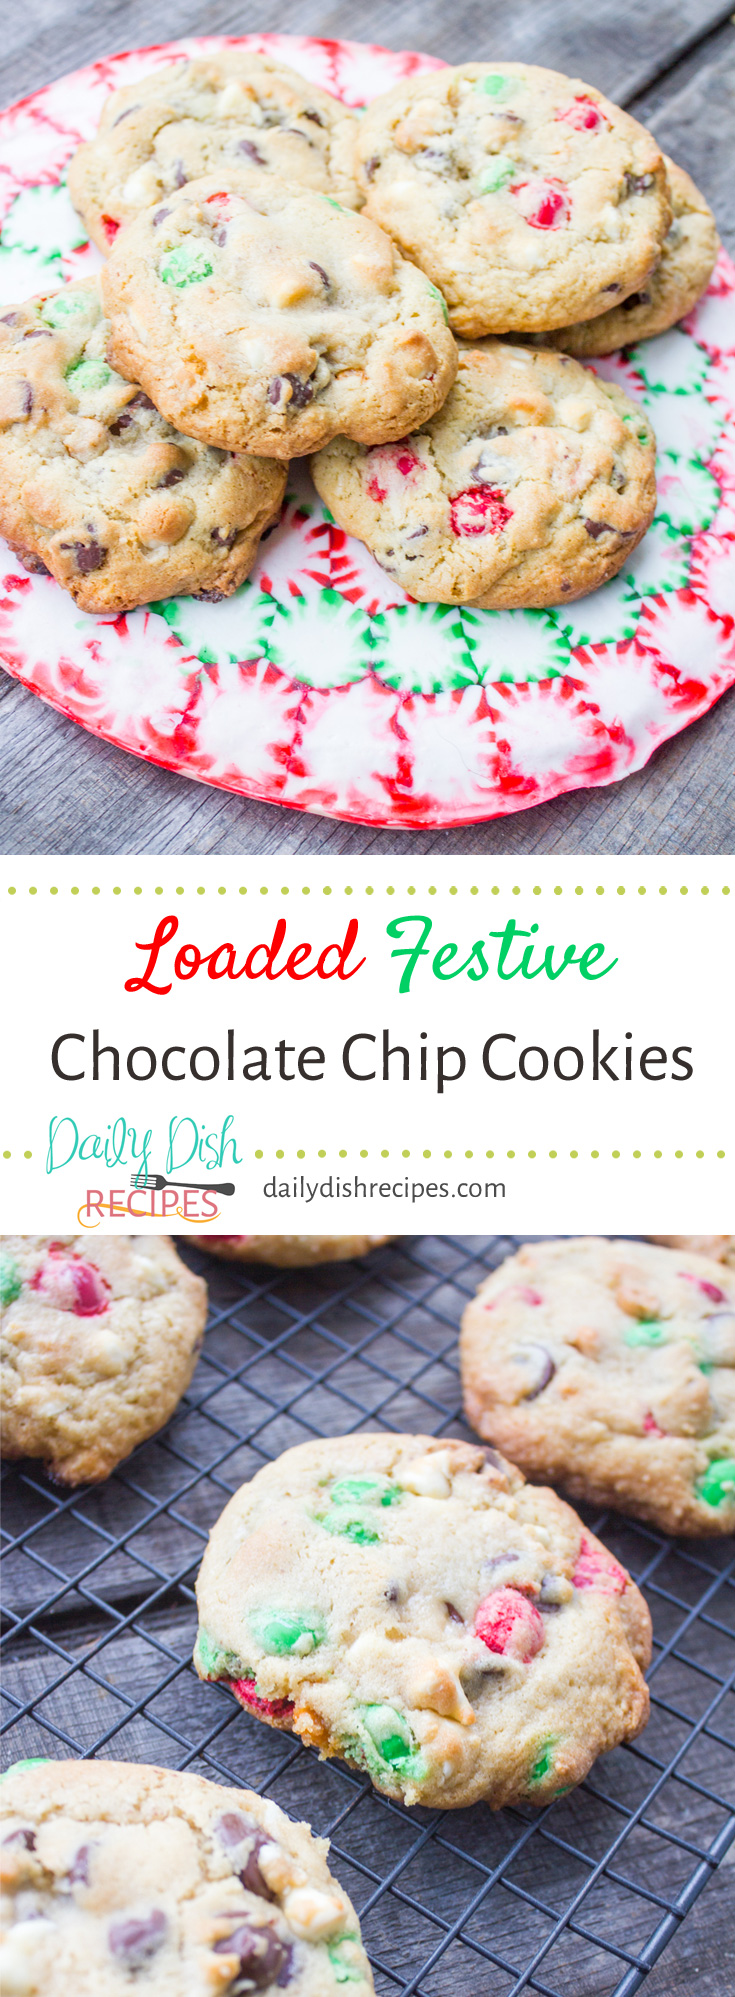 Loaded Festive Chocolate Chip Christmas Cookies are the perfect addition to any holiday table. A soft, moist chocolate chip cookie is loaded down with festive chips, M&Ms and more!